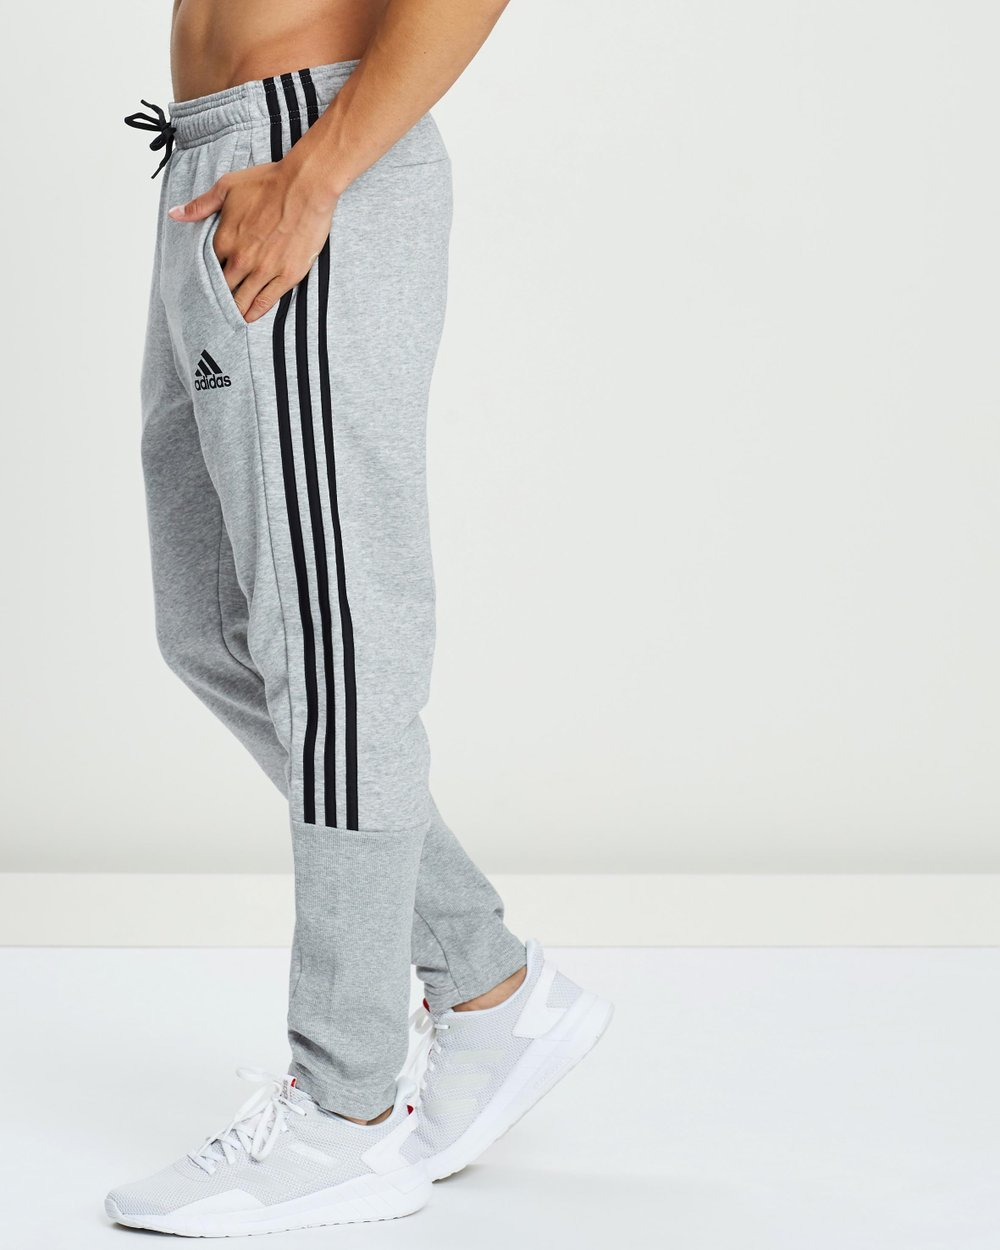 timeless design b9284 15c65 Must Haves 3-Stripes Tiro French Terry Pants by adidas Performance Online    THE ICONIC   Australia